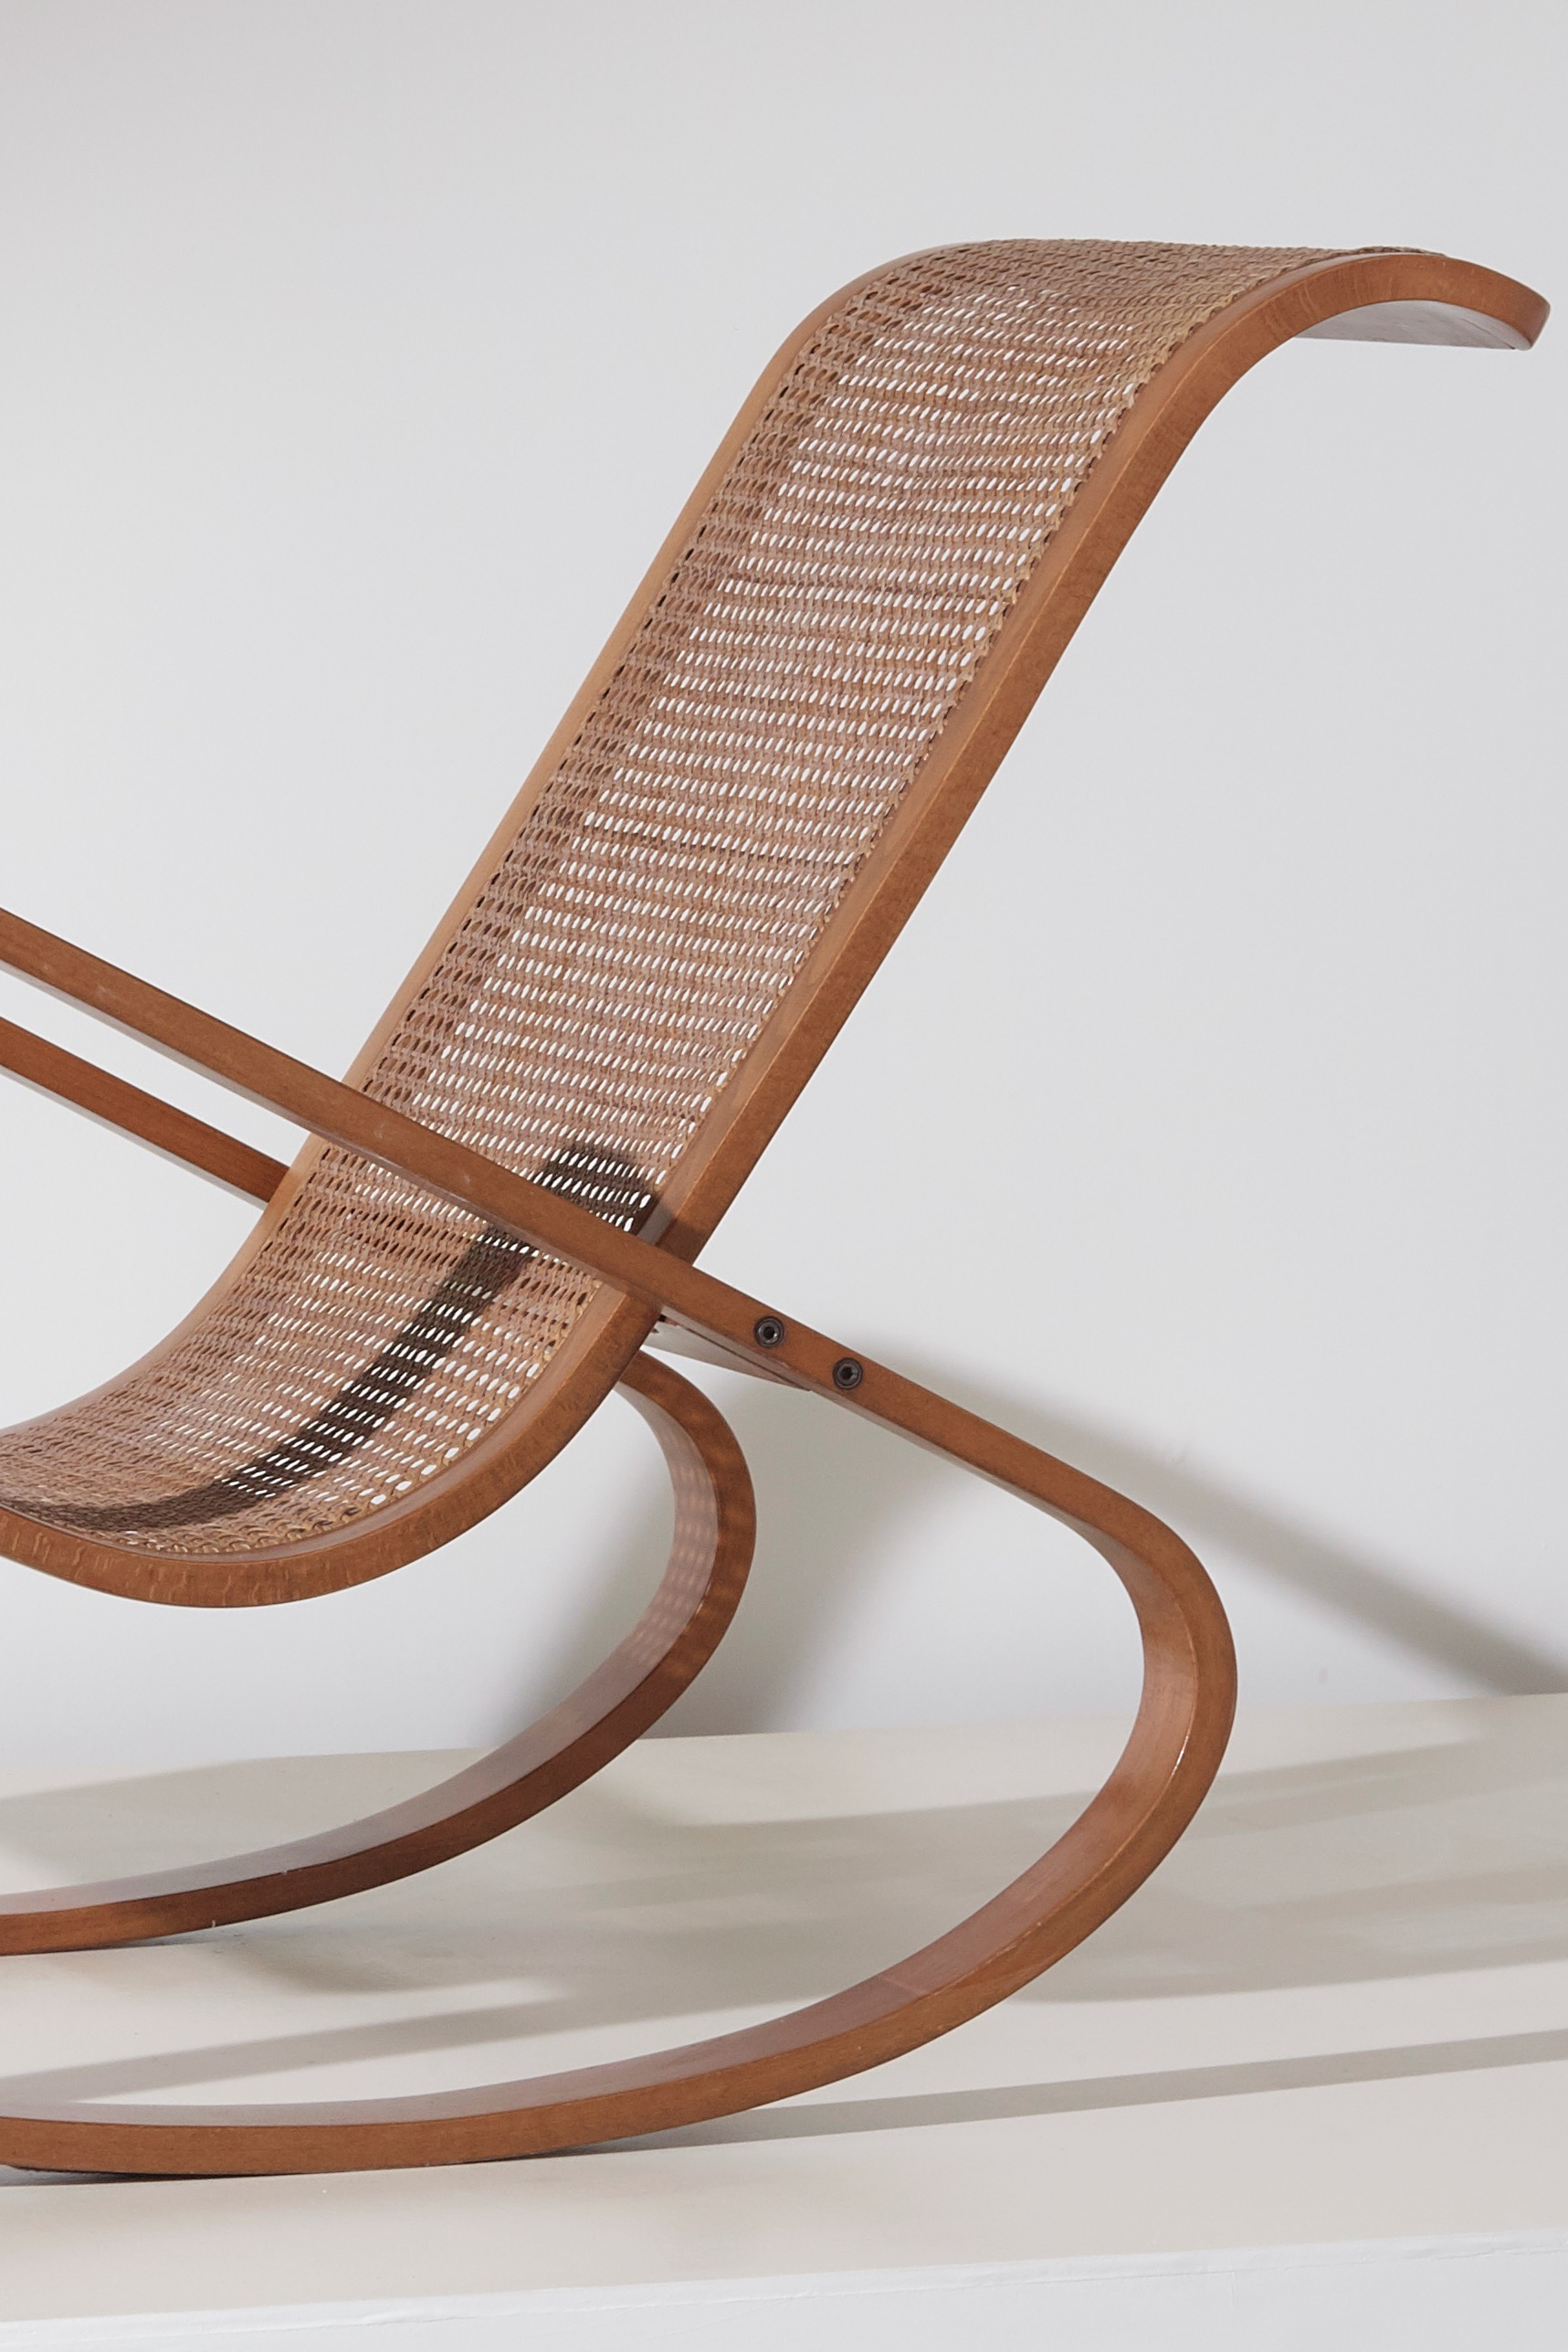 Dondolo rocking chair by Luigi Crassevig 1970s - Front view